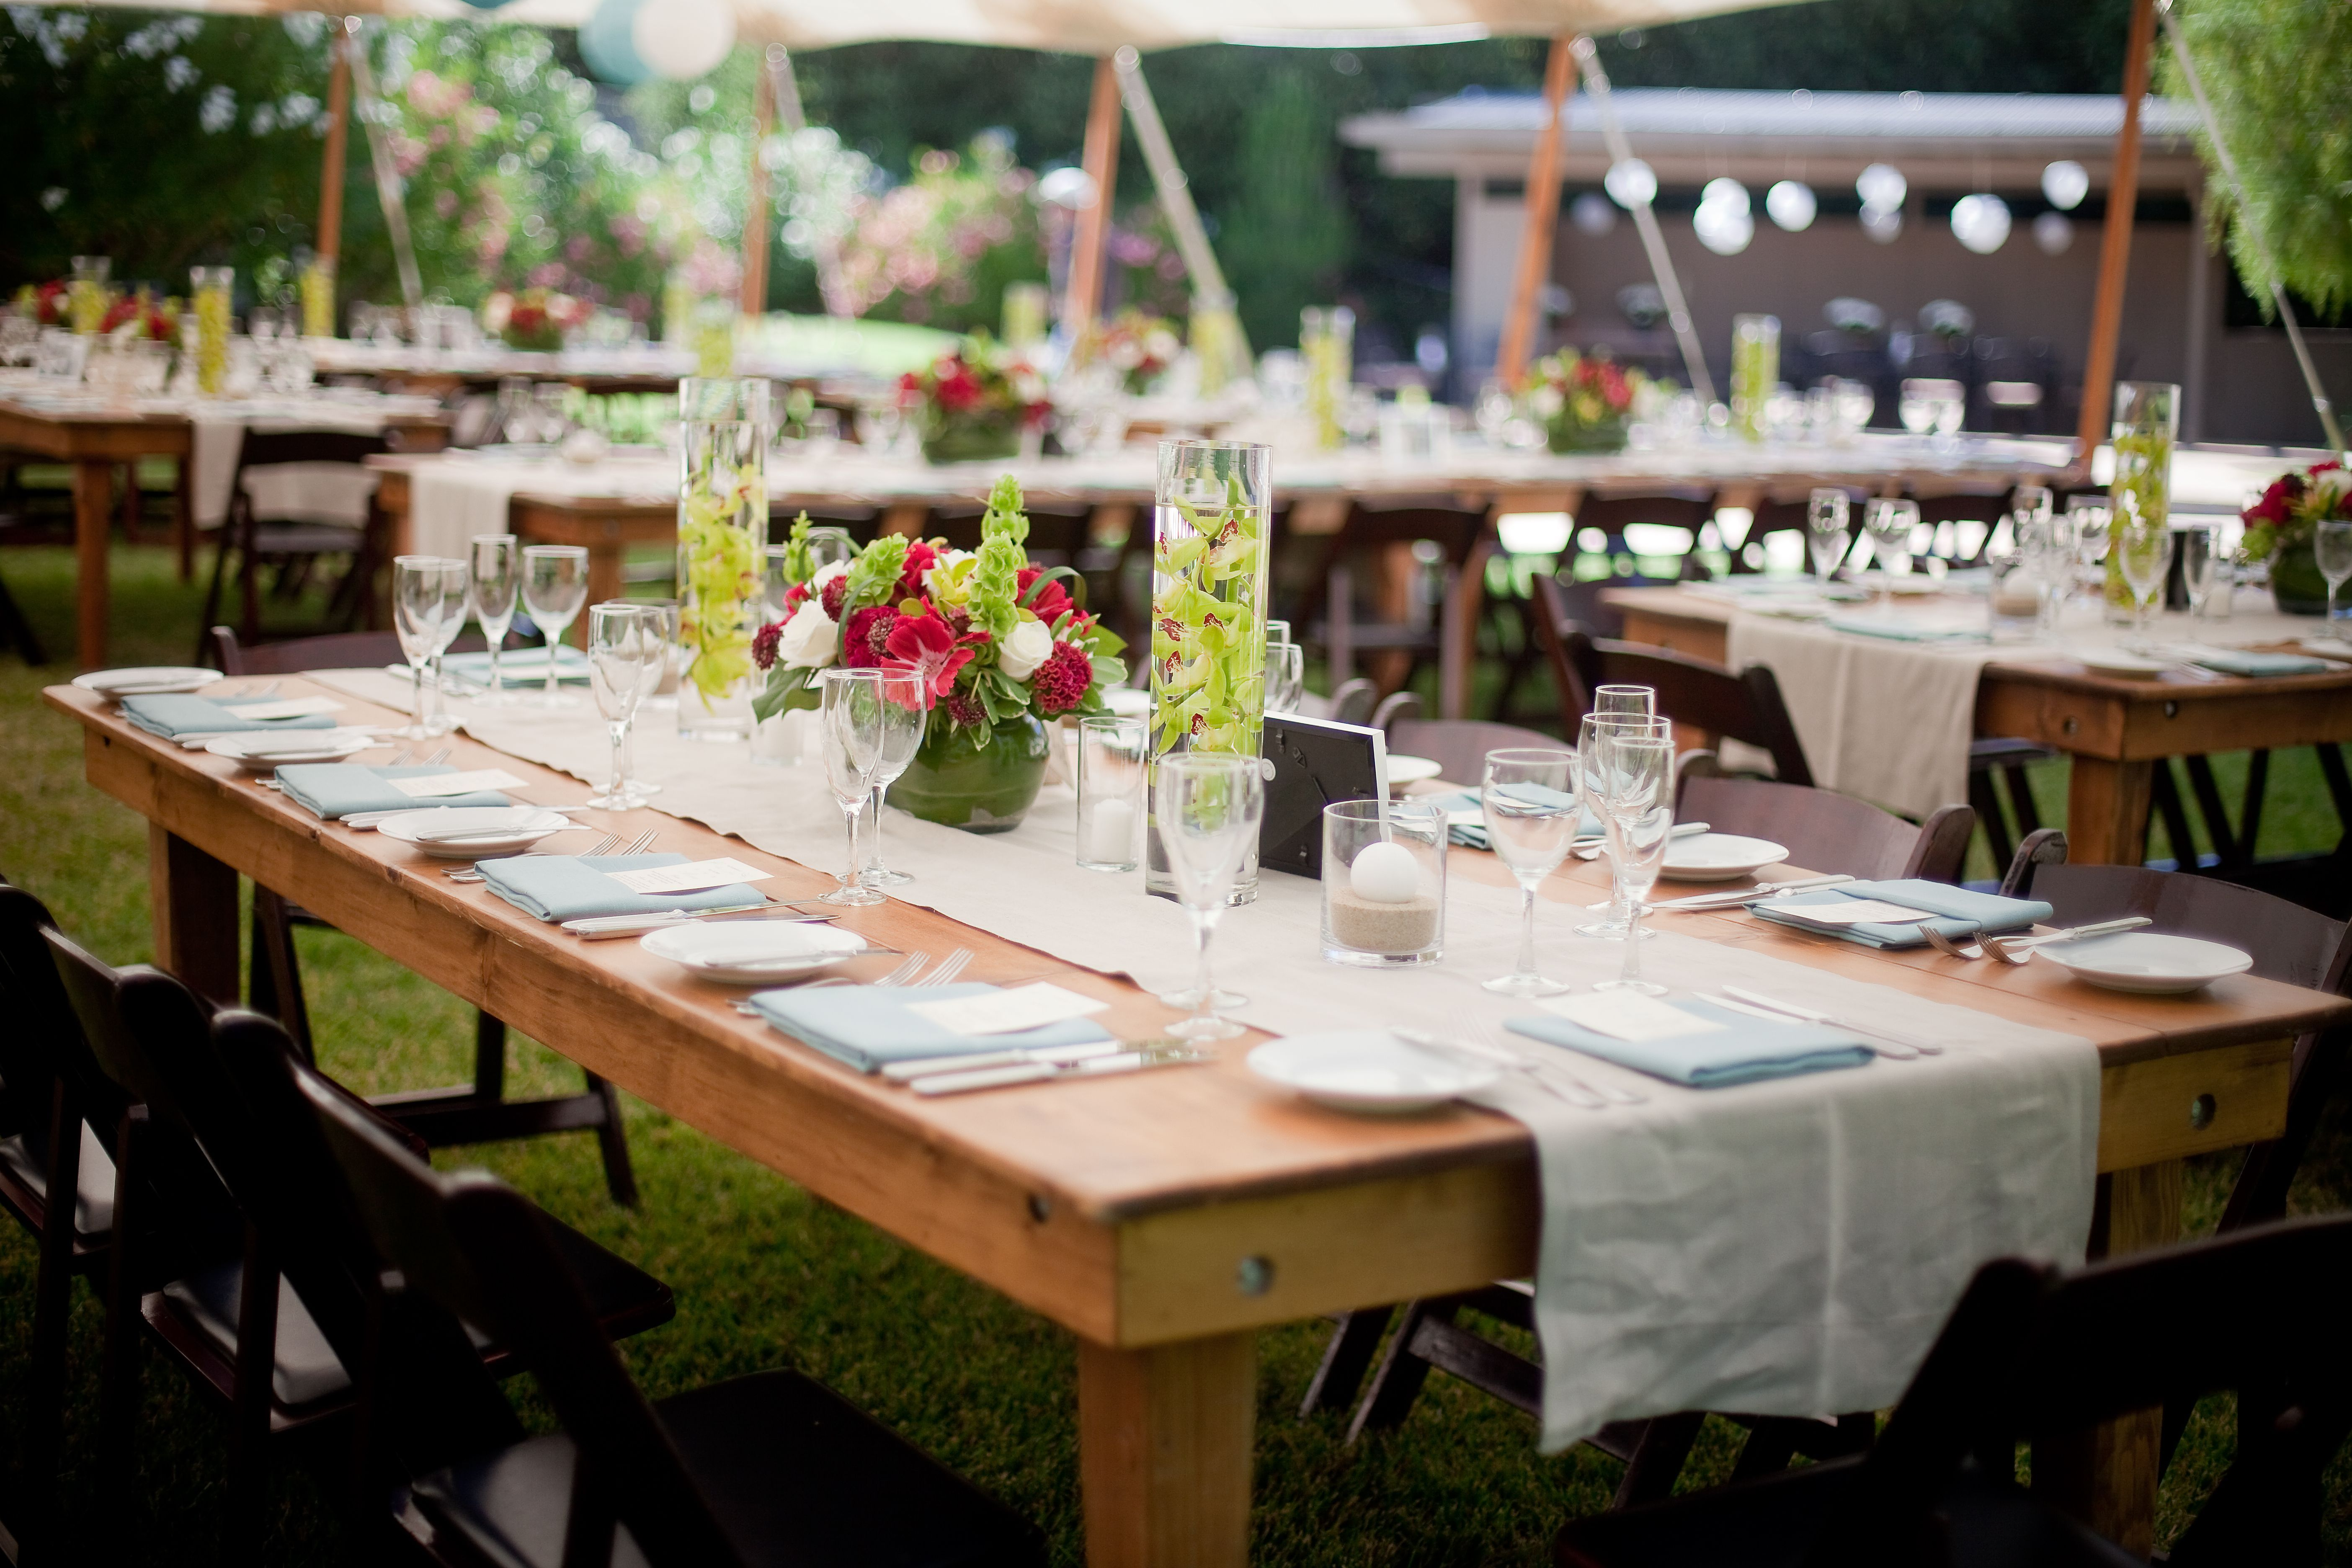 Our Hand Crafted Wood Farm Tables Are Made In House And Measure 8u0027x46u2033  Seating Up To 12 Guests. Designed To Be Used Bare Or With A Runner, These  Tables Are ...